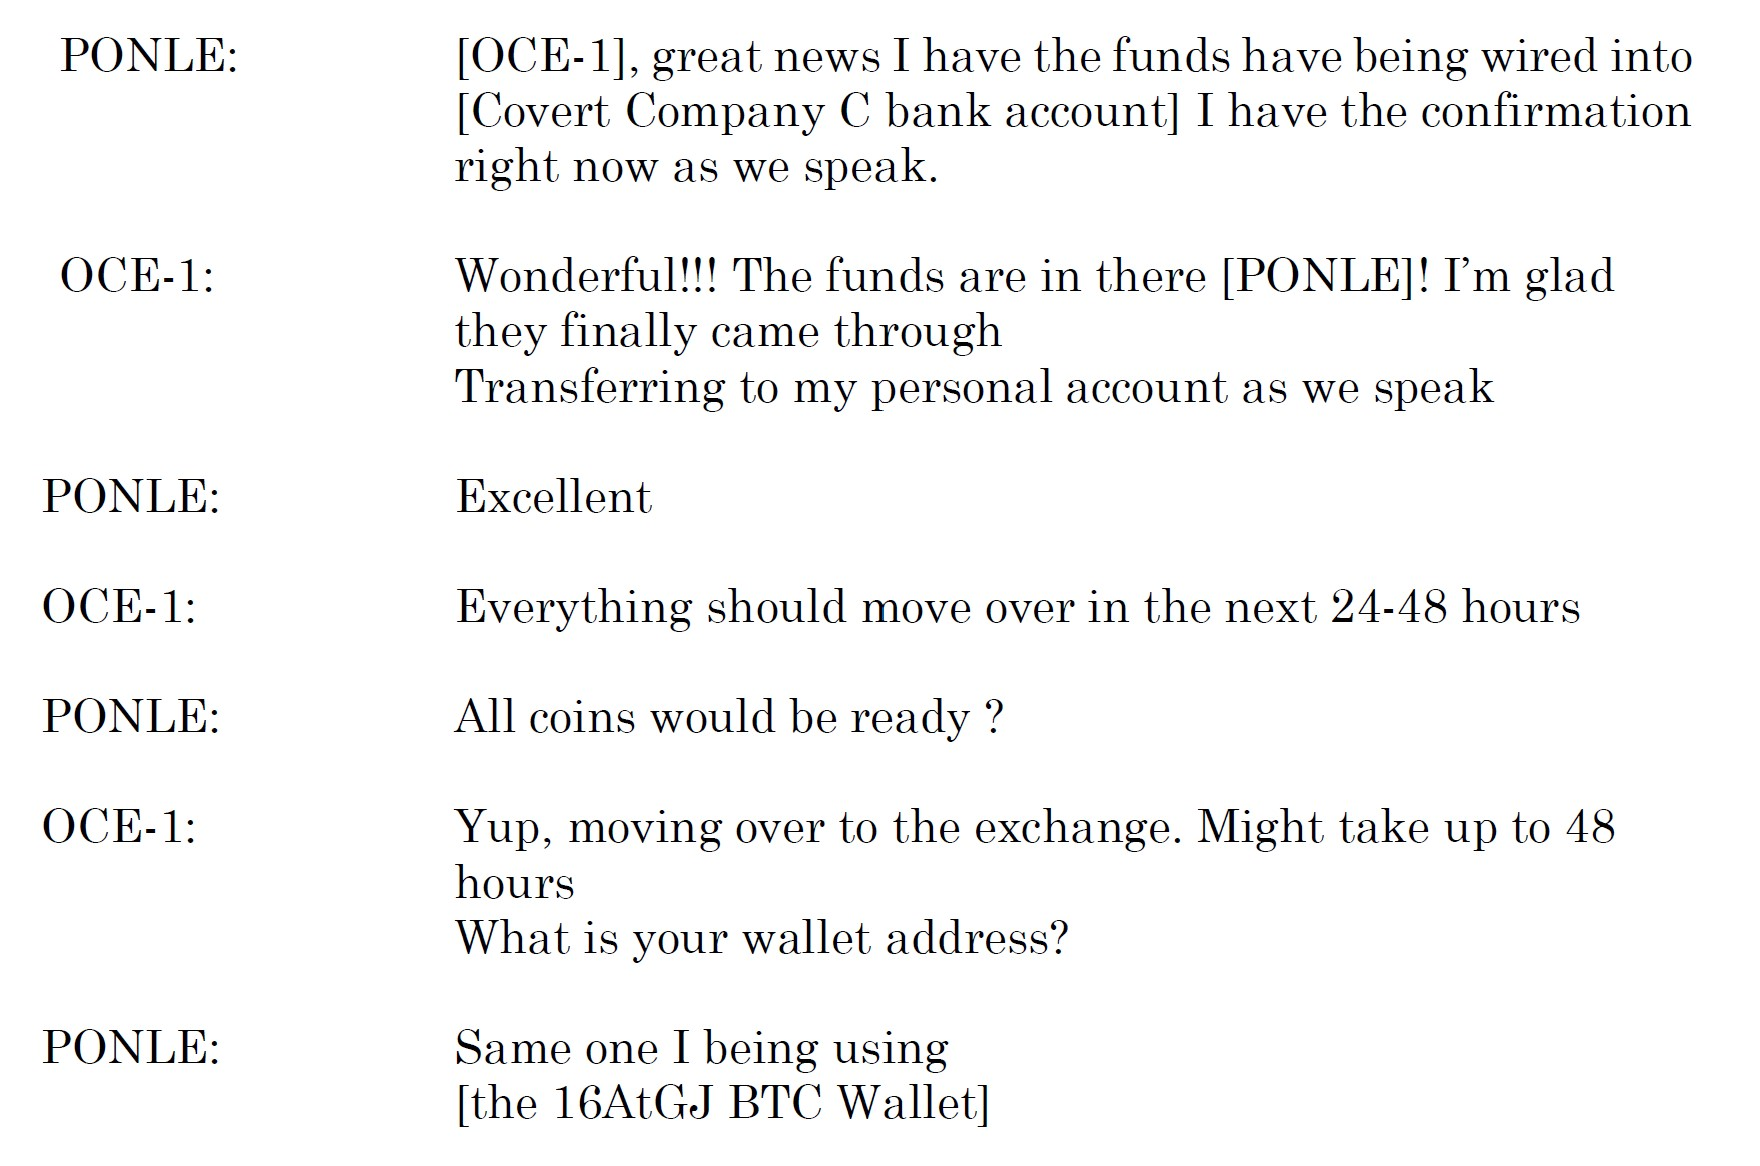 A discussion between Ponle and his associate of the Sept. 9, 2019 transaction